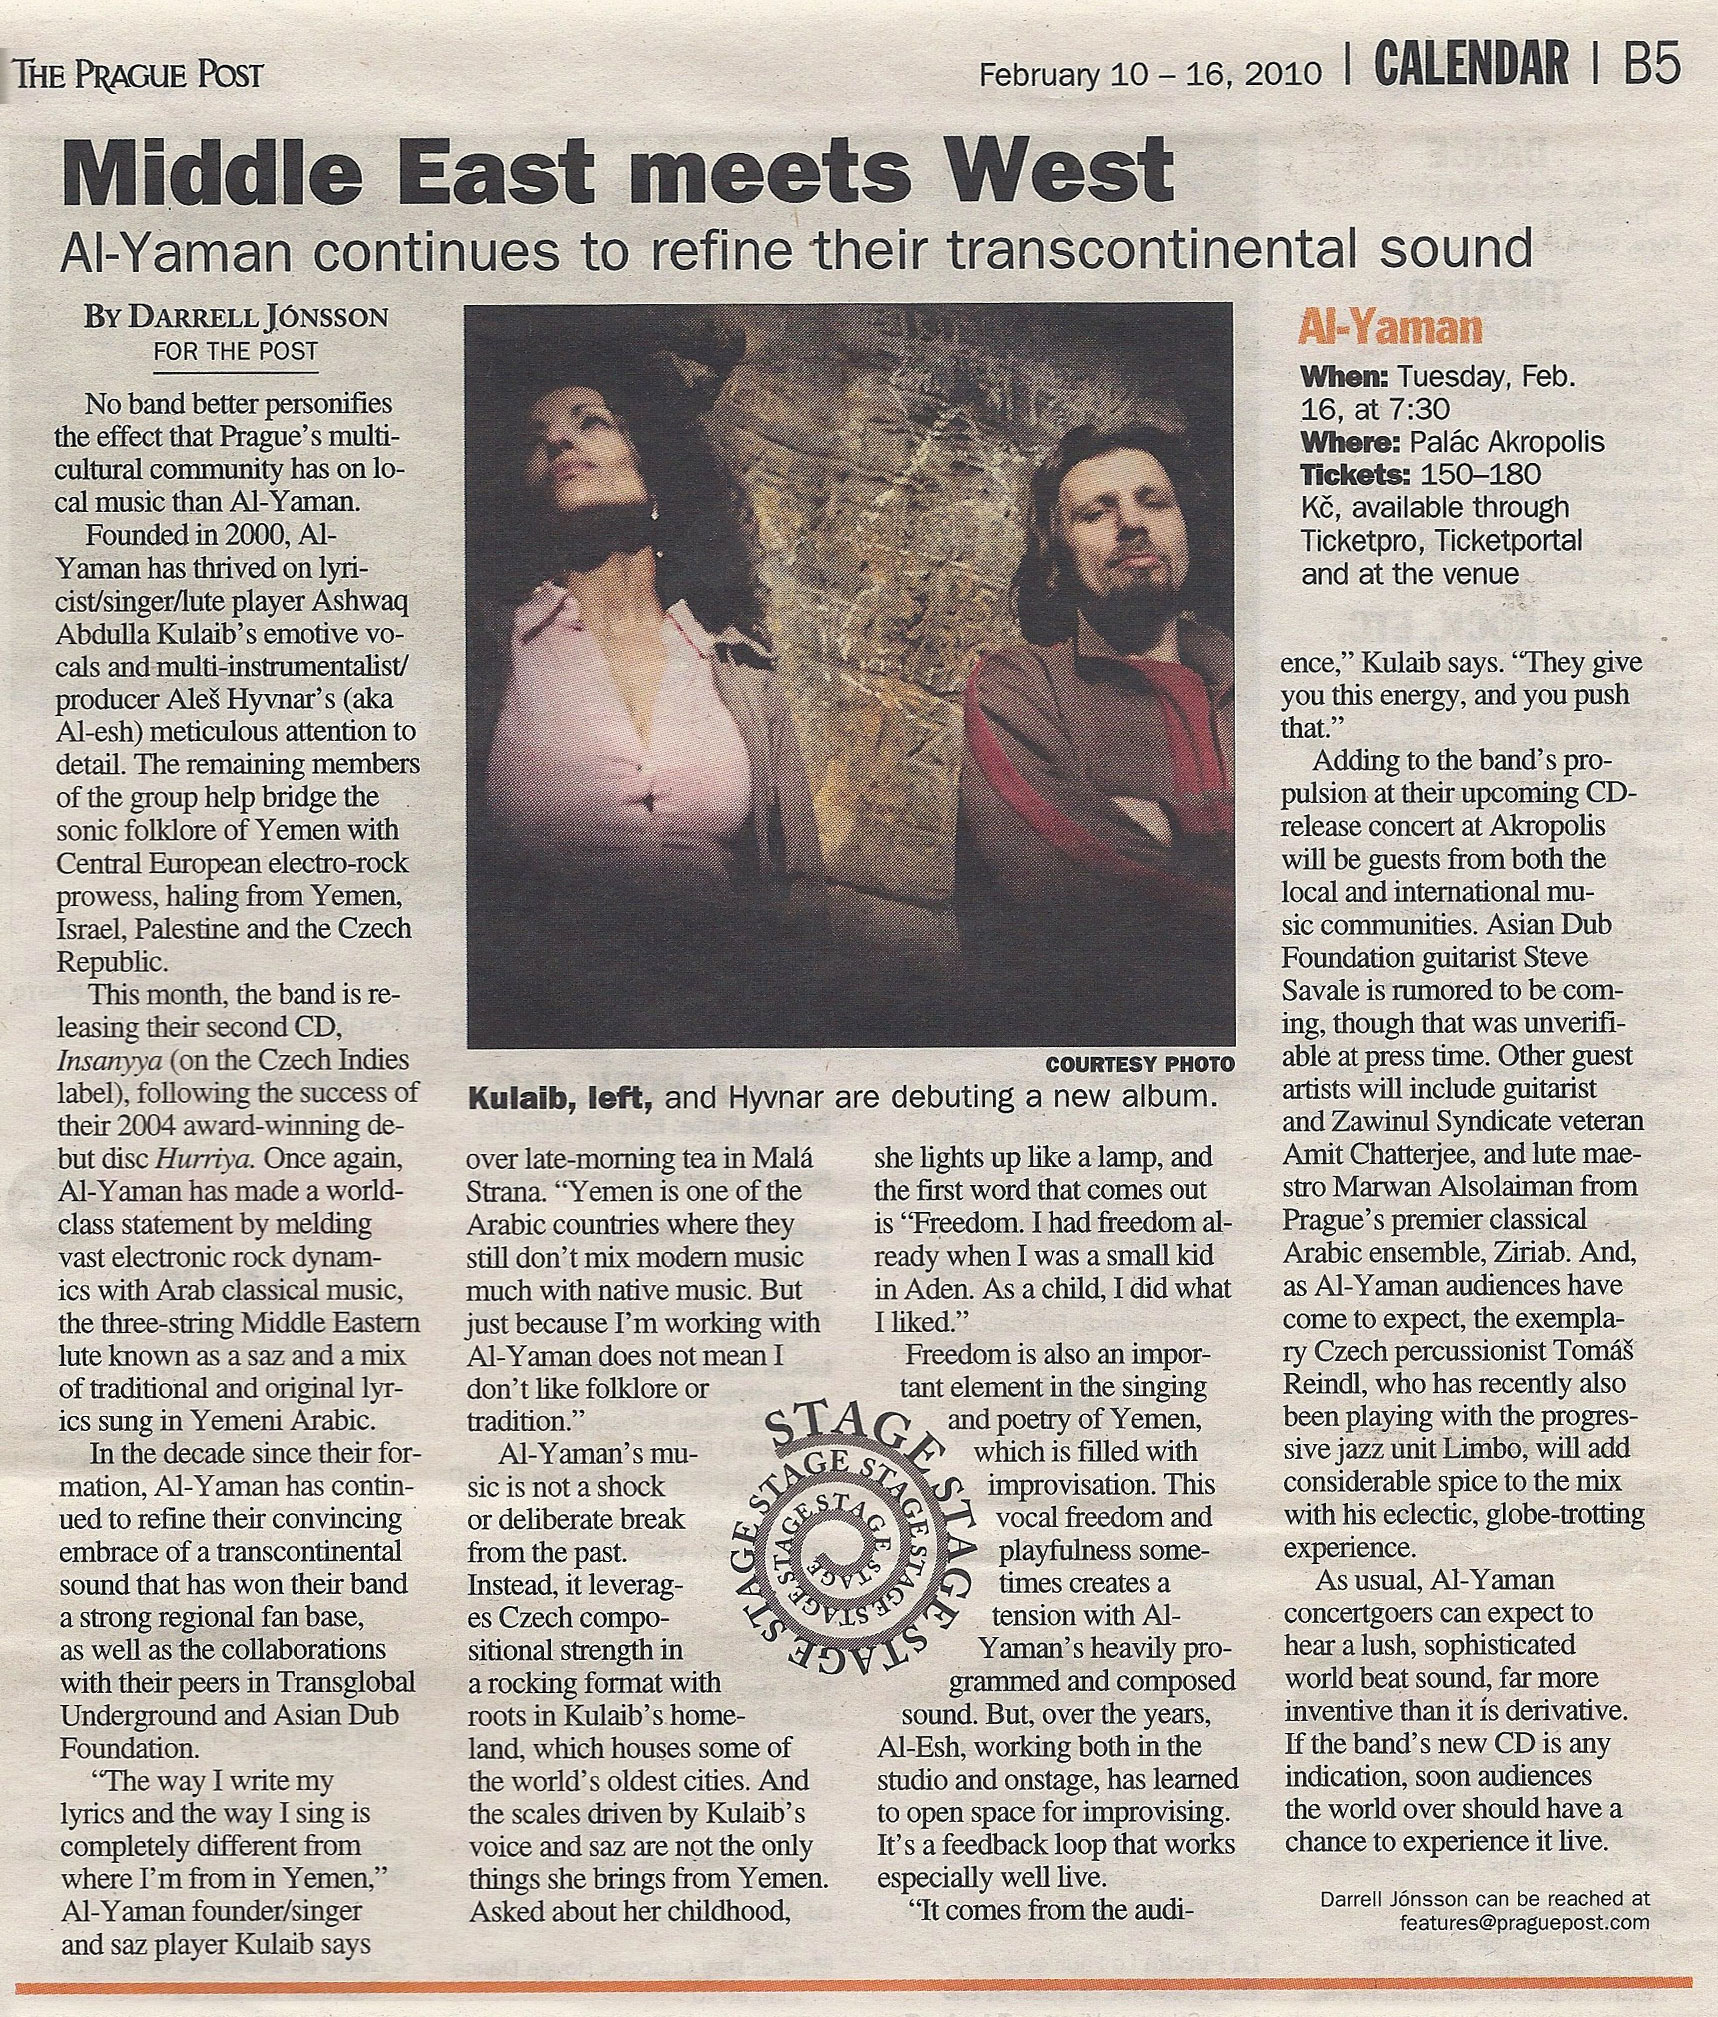 middle_east_meets_west_edited